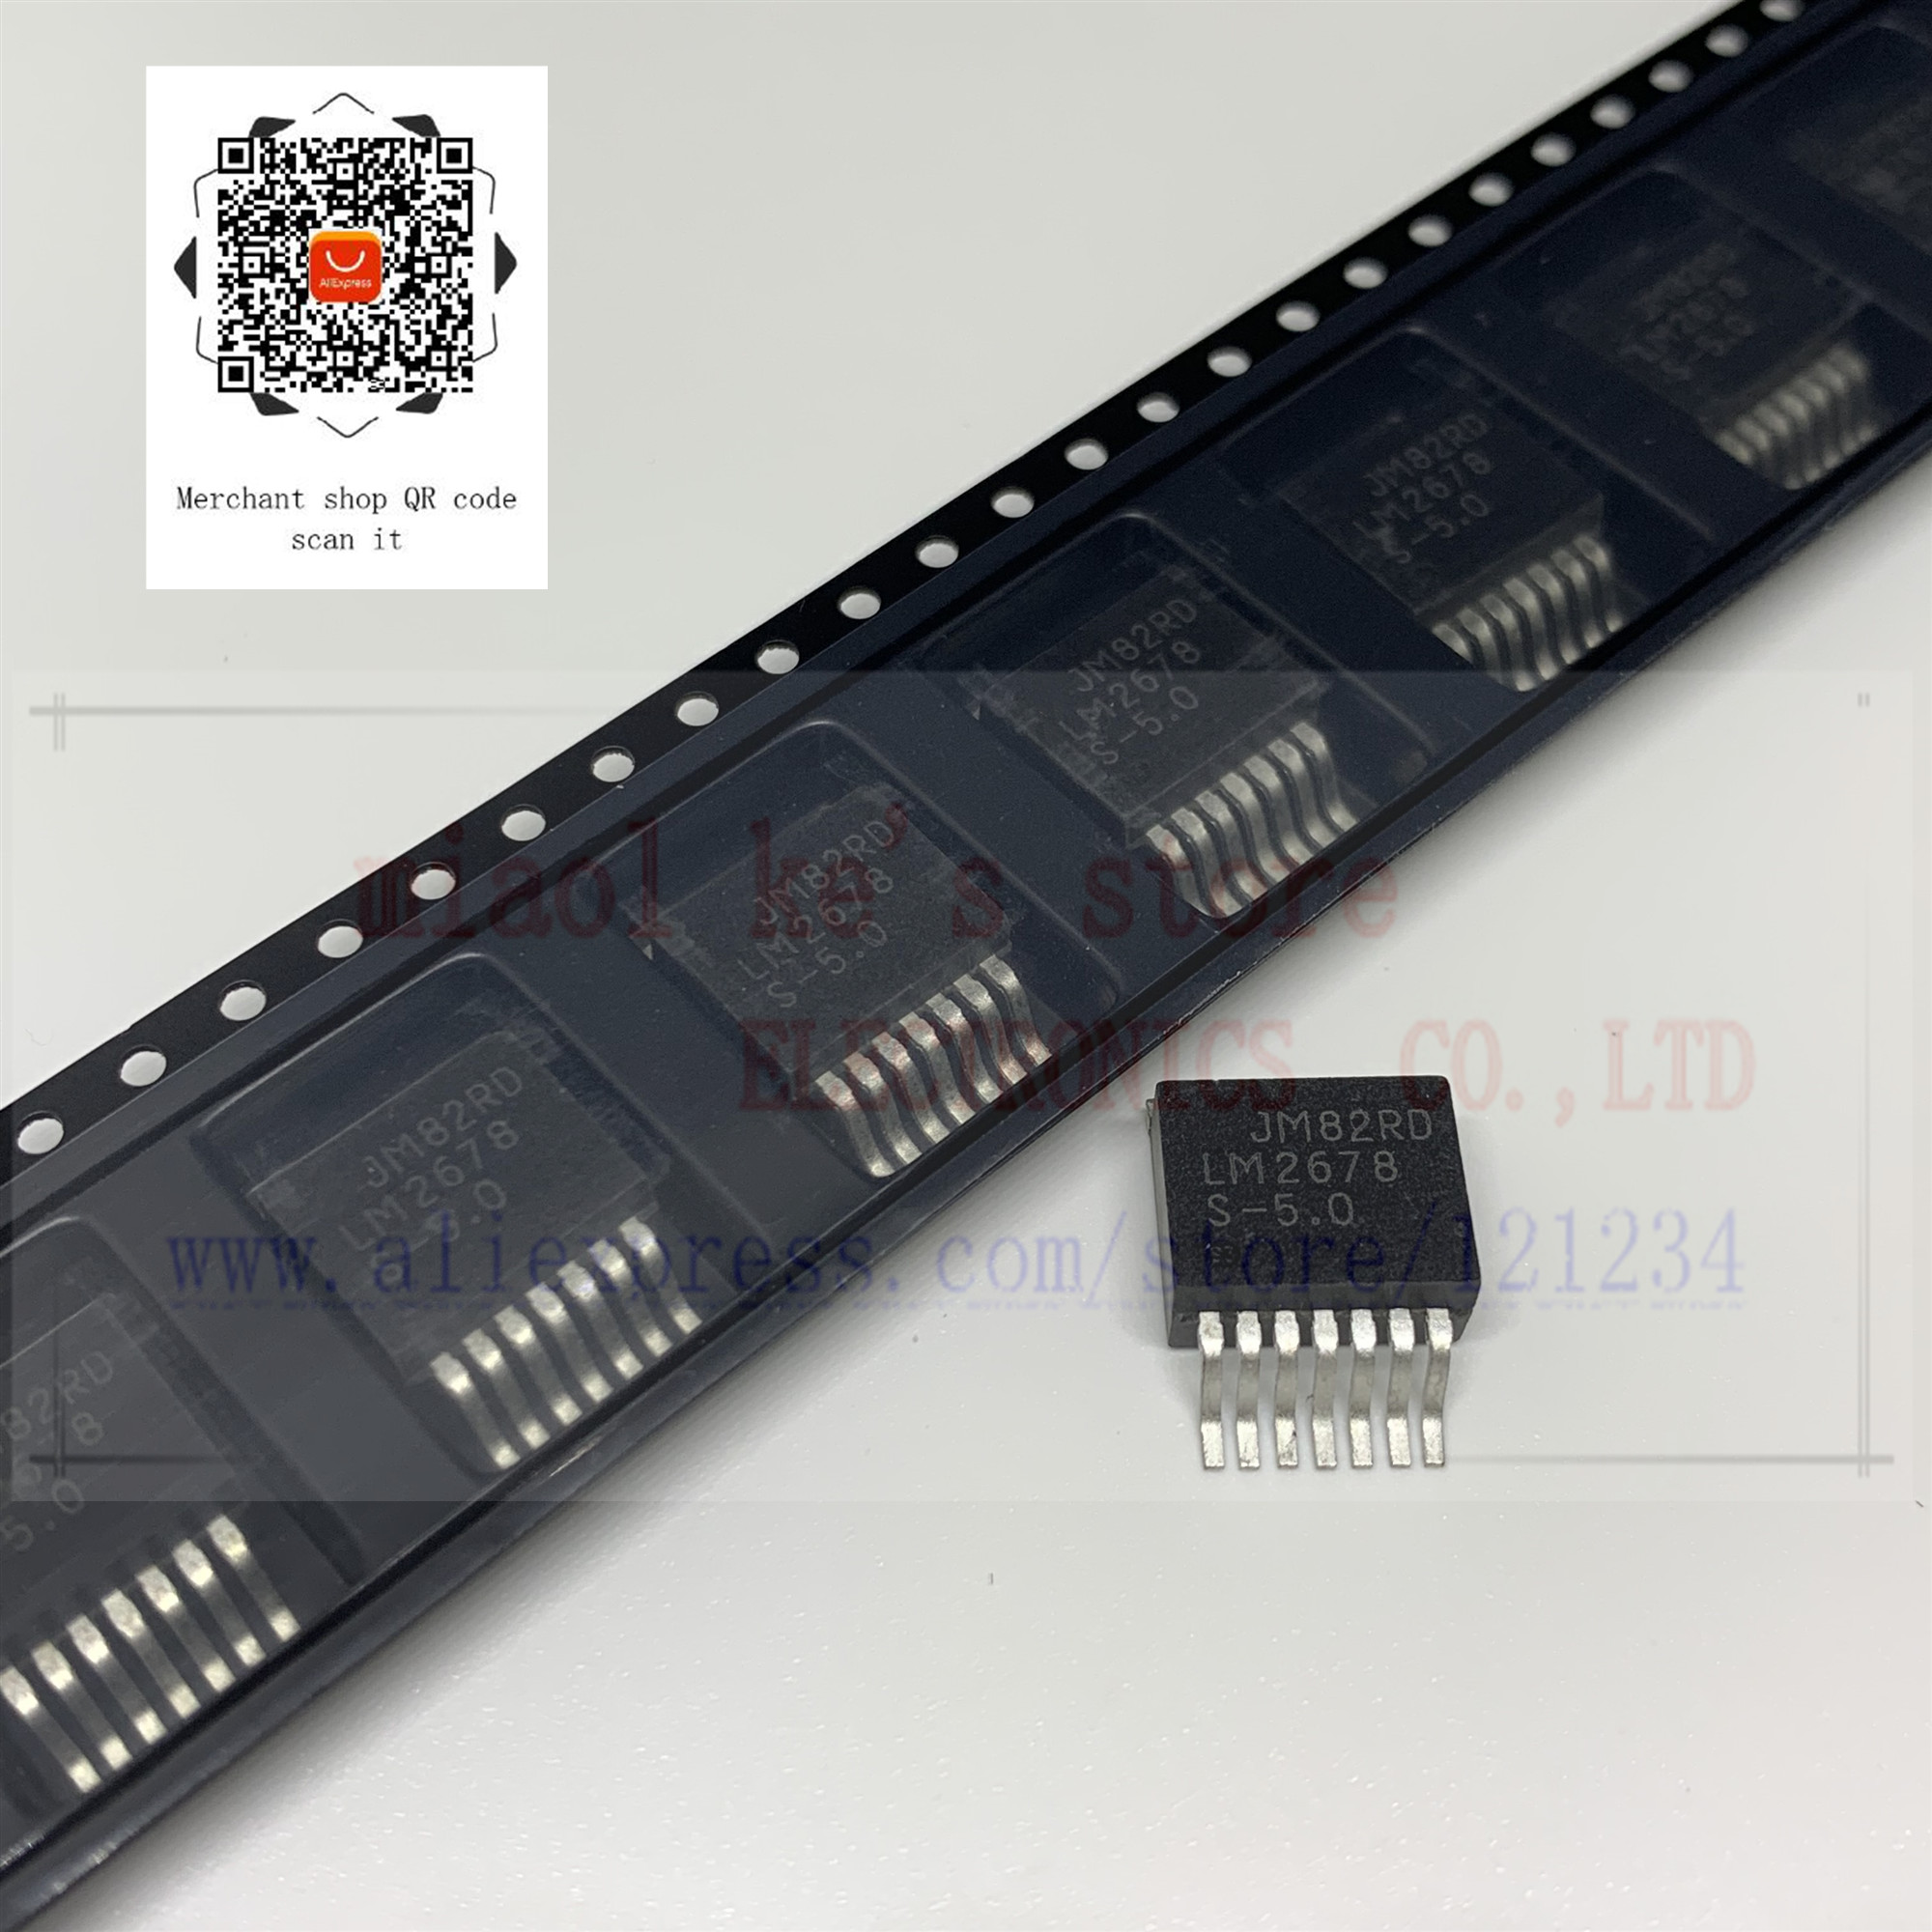 [5 pces/1 lote ou 10 pces/1 lote] 100% novo original; LM2678S-5.0/nopb LM2678S-5.0 lm2678 S-5.0-ic reg buck 5 v 5a 260 khz TO263-7/TO-263CA